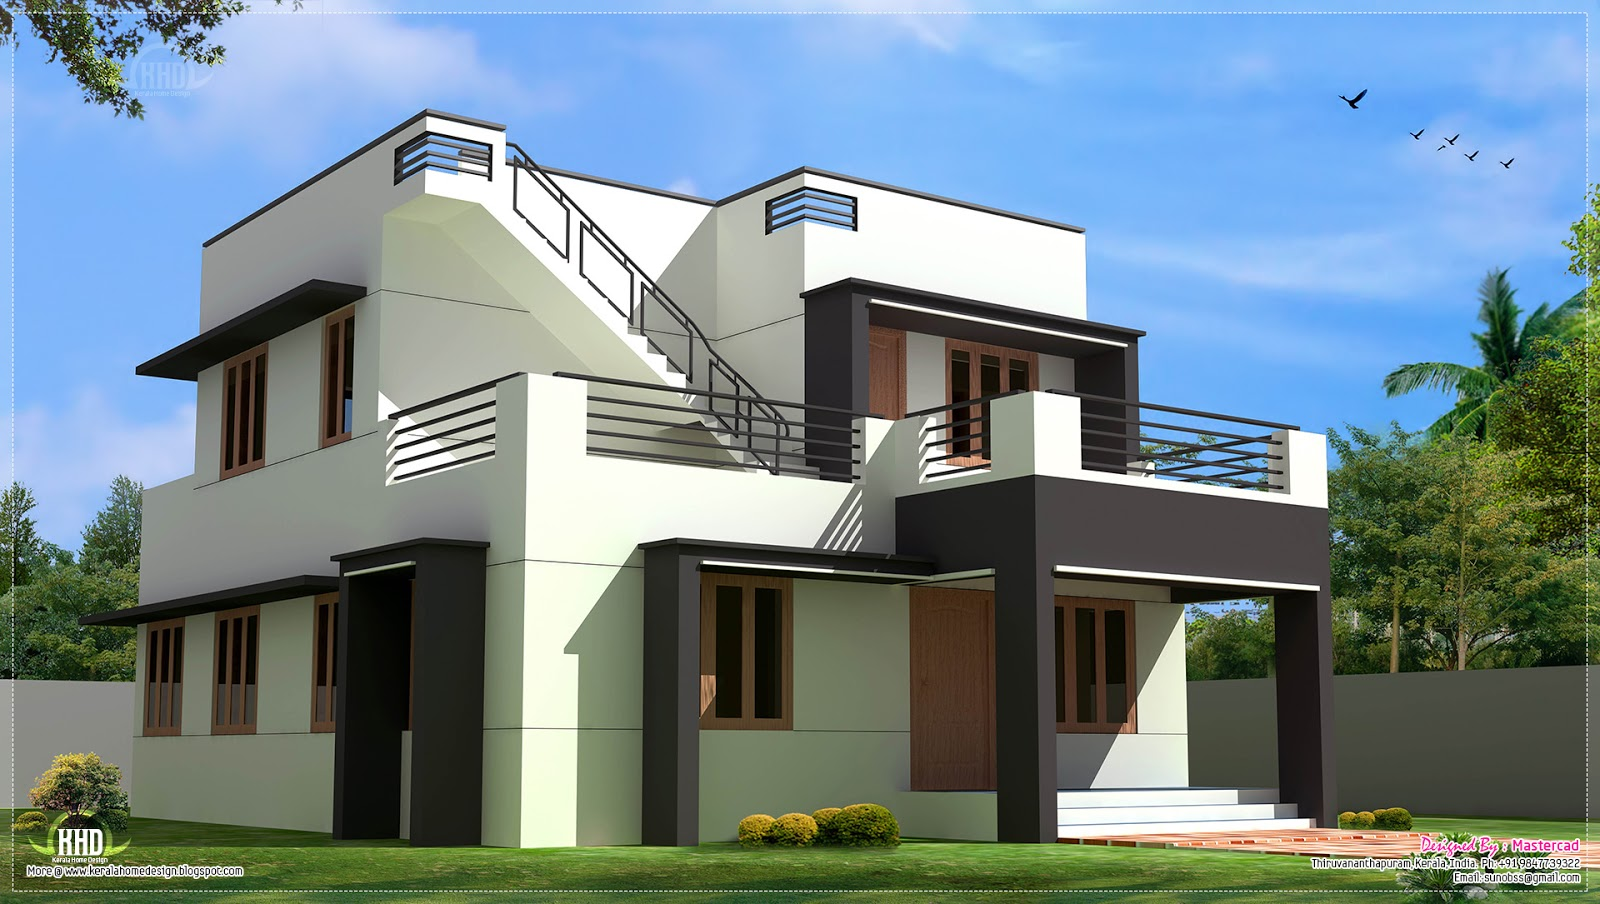 Modern house design in 1700 kerala home design for 4 bedroom modern house plans